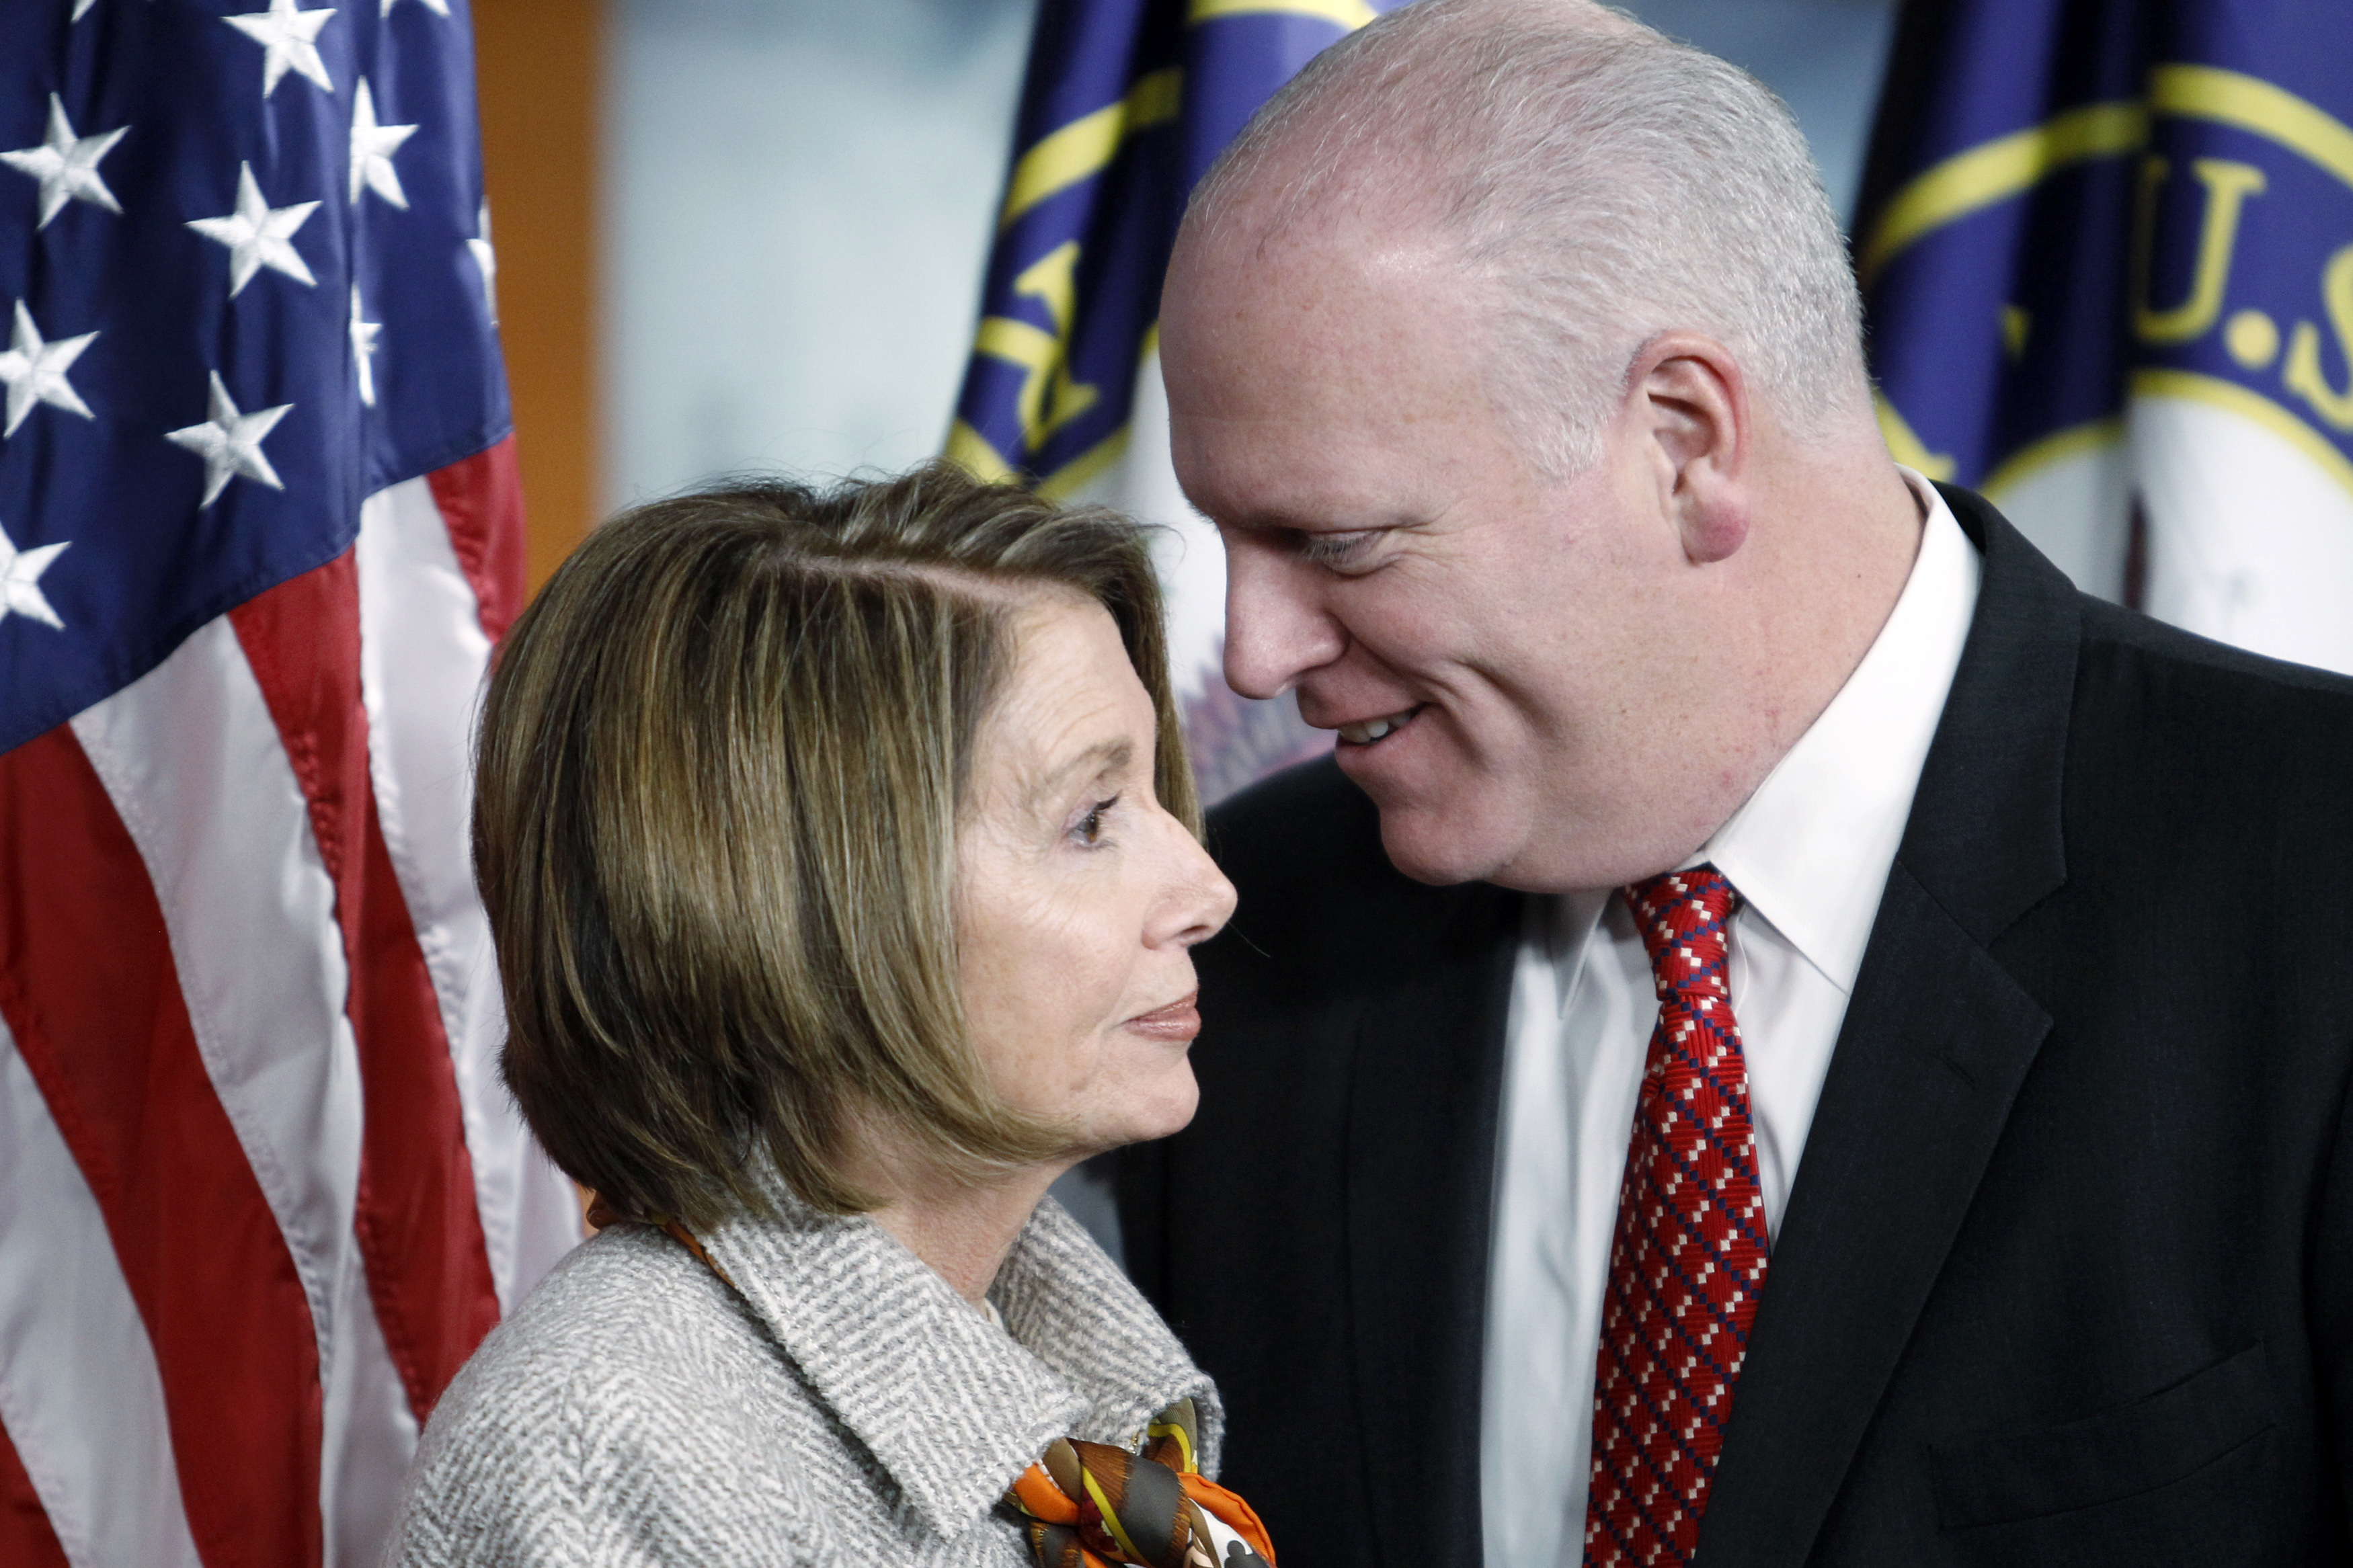 "U.S. House Speaker Nancy Pelosi (D-CA) (L) shares a conversation with Representative Joe Crowley (D-NY) after the passage of the ""Dream Act"" in the House of Representatives in Washington, December 17, 2010. The Dream Act legislation allows young individuals who were brought into the U.S. illegally by their parents to gain a legal status by completing two years of college or military service. REUTERS/Hyungwon Kang"